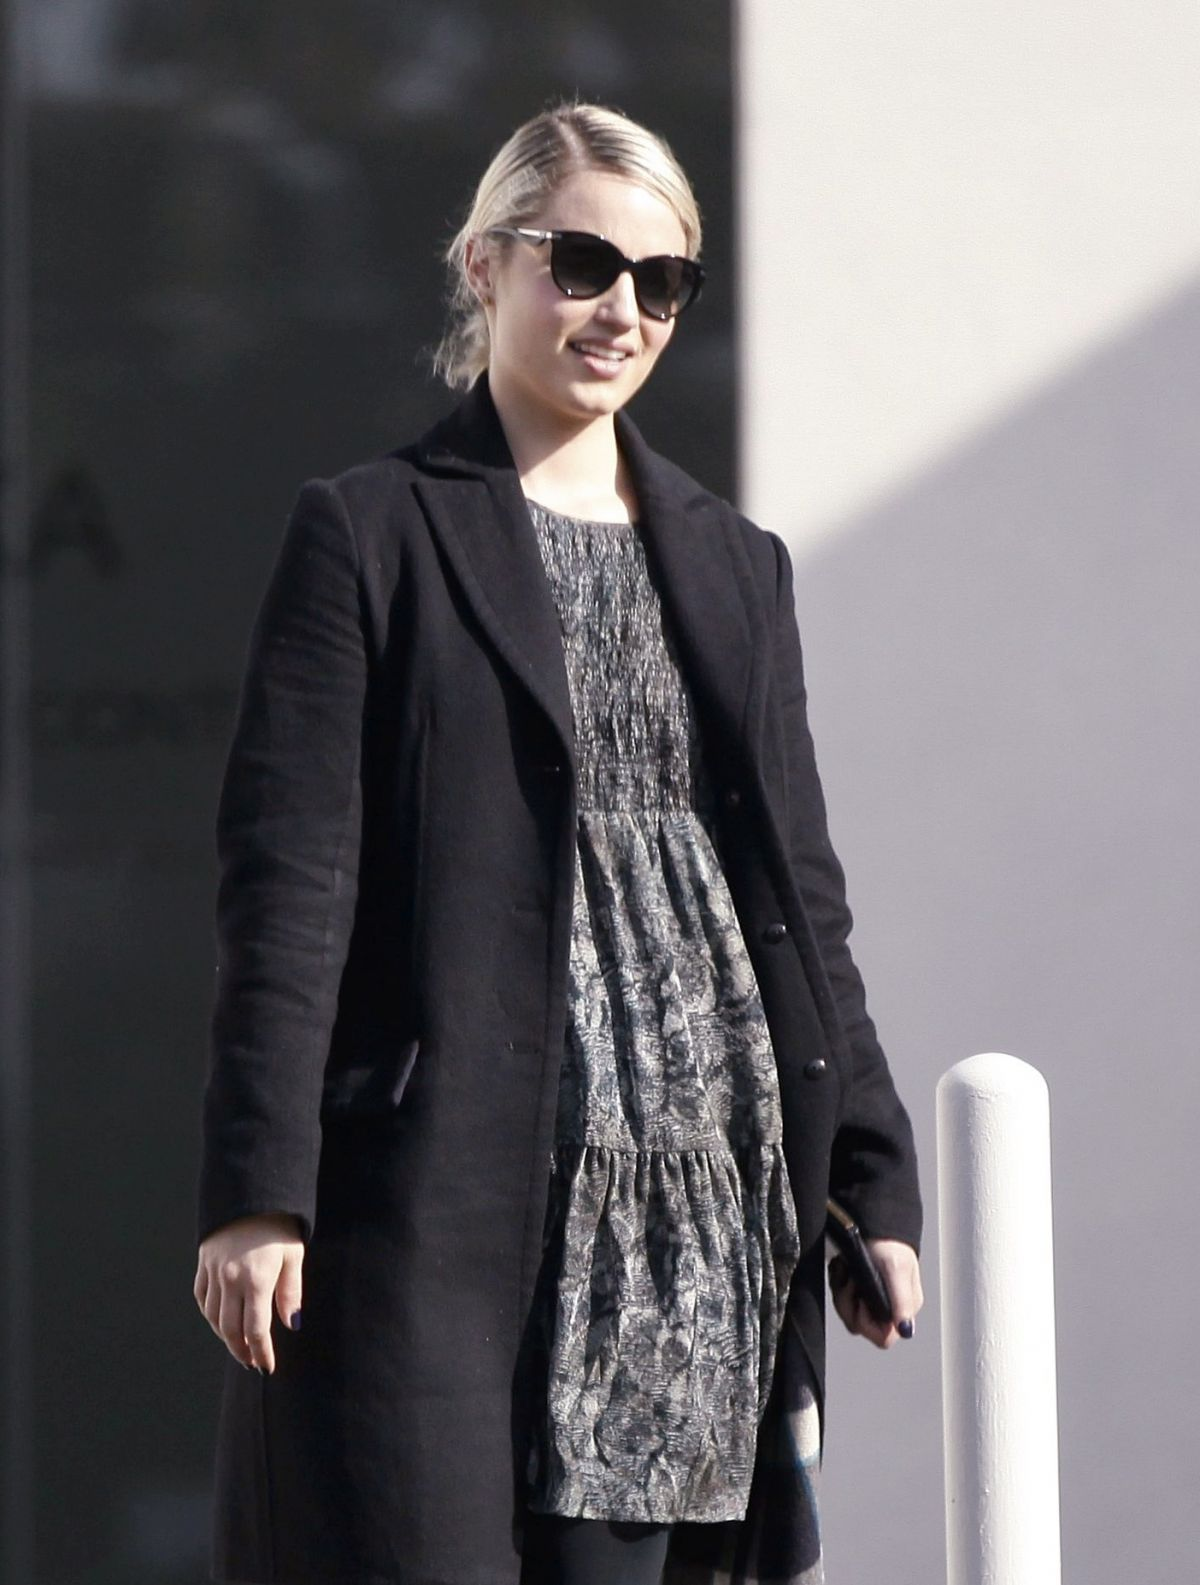 Dianna Agron Street Style U2013 Visiting The Kohn Gallery In Los Angeles